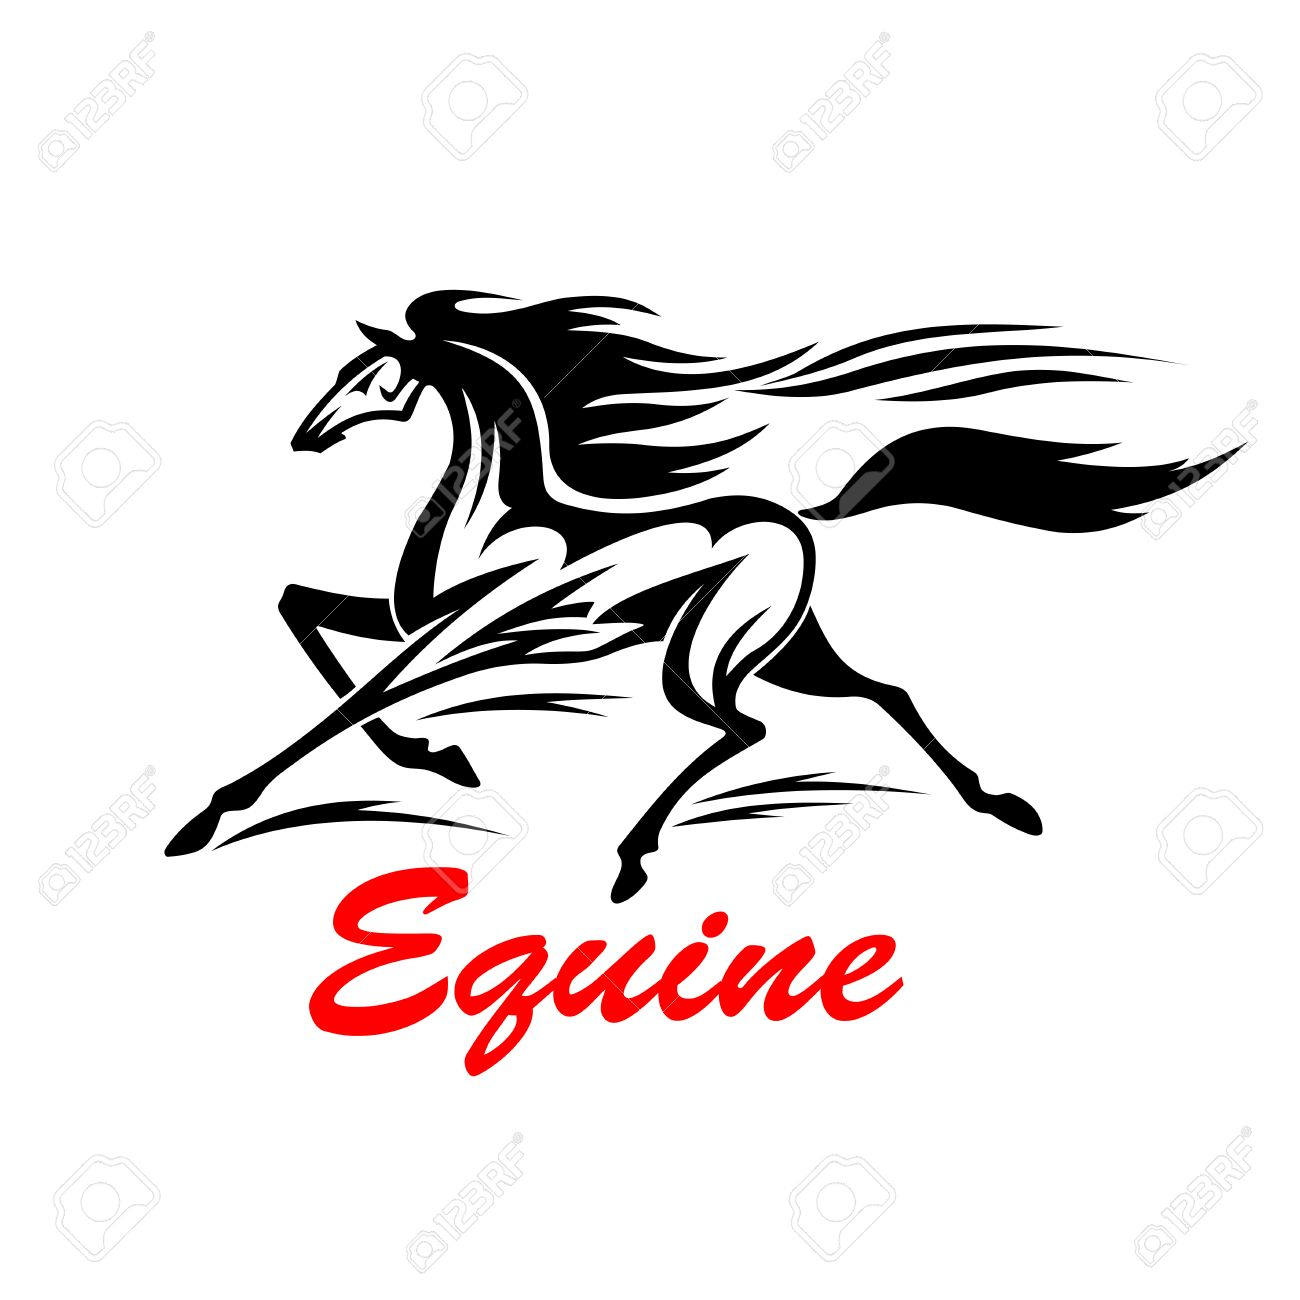 Galloping Wild Mustang Is Competing In Speed With Wind Tribal Royalty Free Cliparts Vectors And Stock Illustration Image 58721370